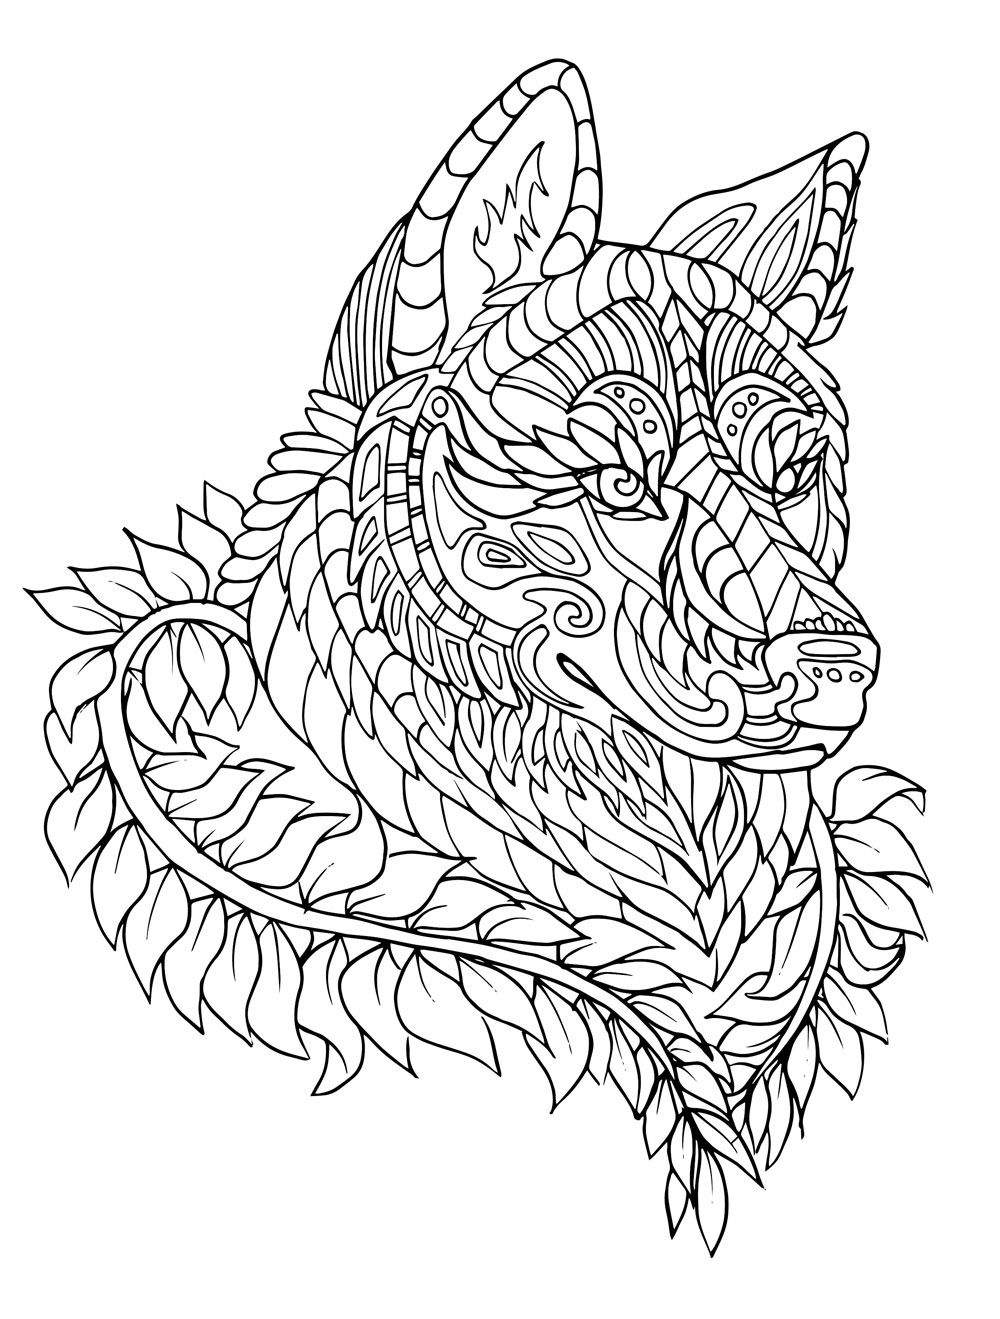 Wolf Coloring Books Coloring Books Coloring Book Album People Coloring Pages